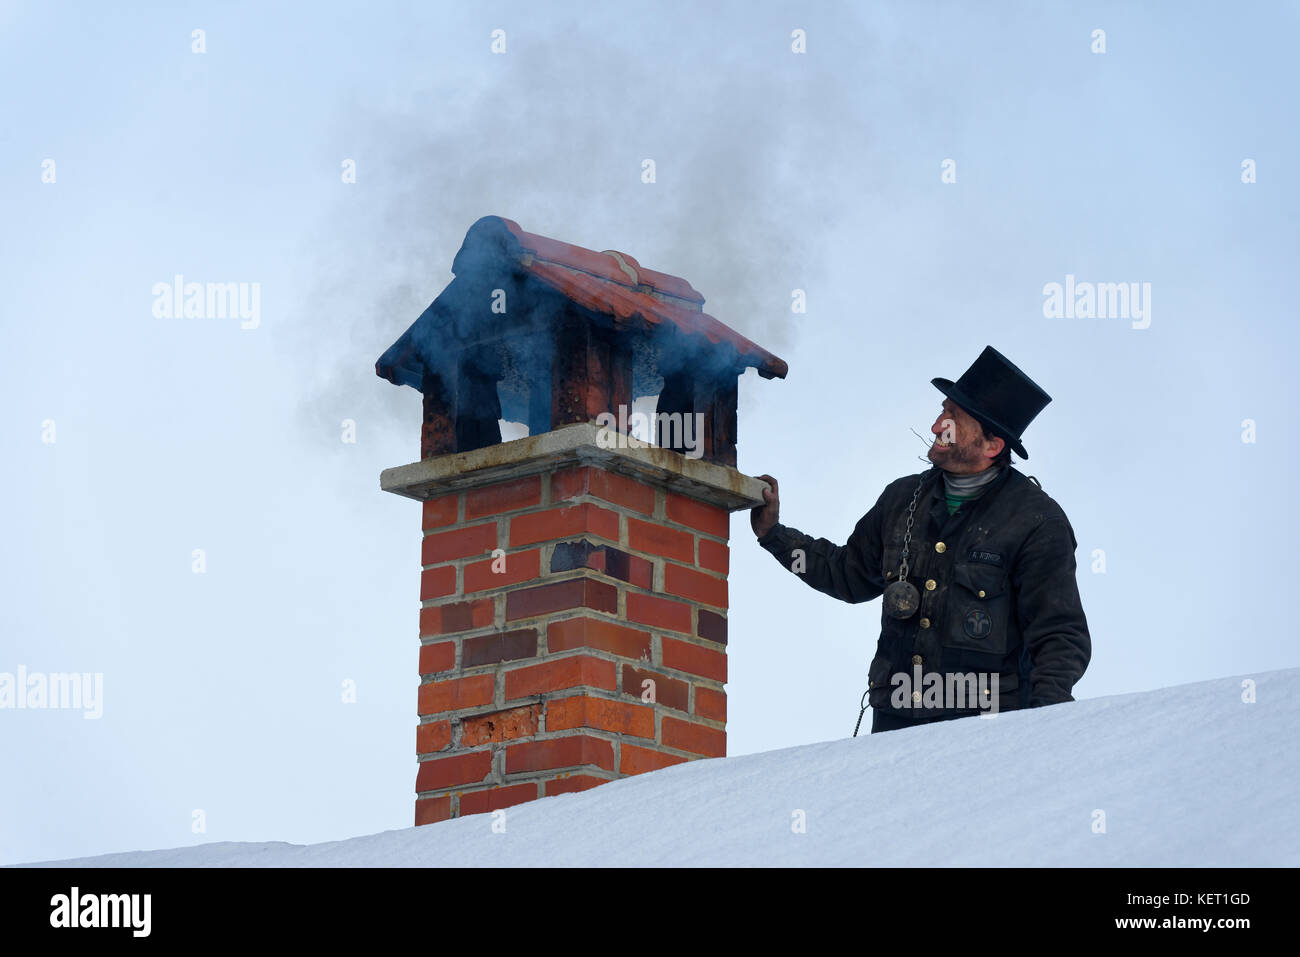 Chimney sweeper in winter on a roof with smoky chimney, Upper Bavaria, Bavaria, Germany - Stock Image